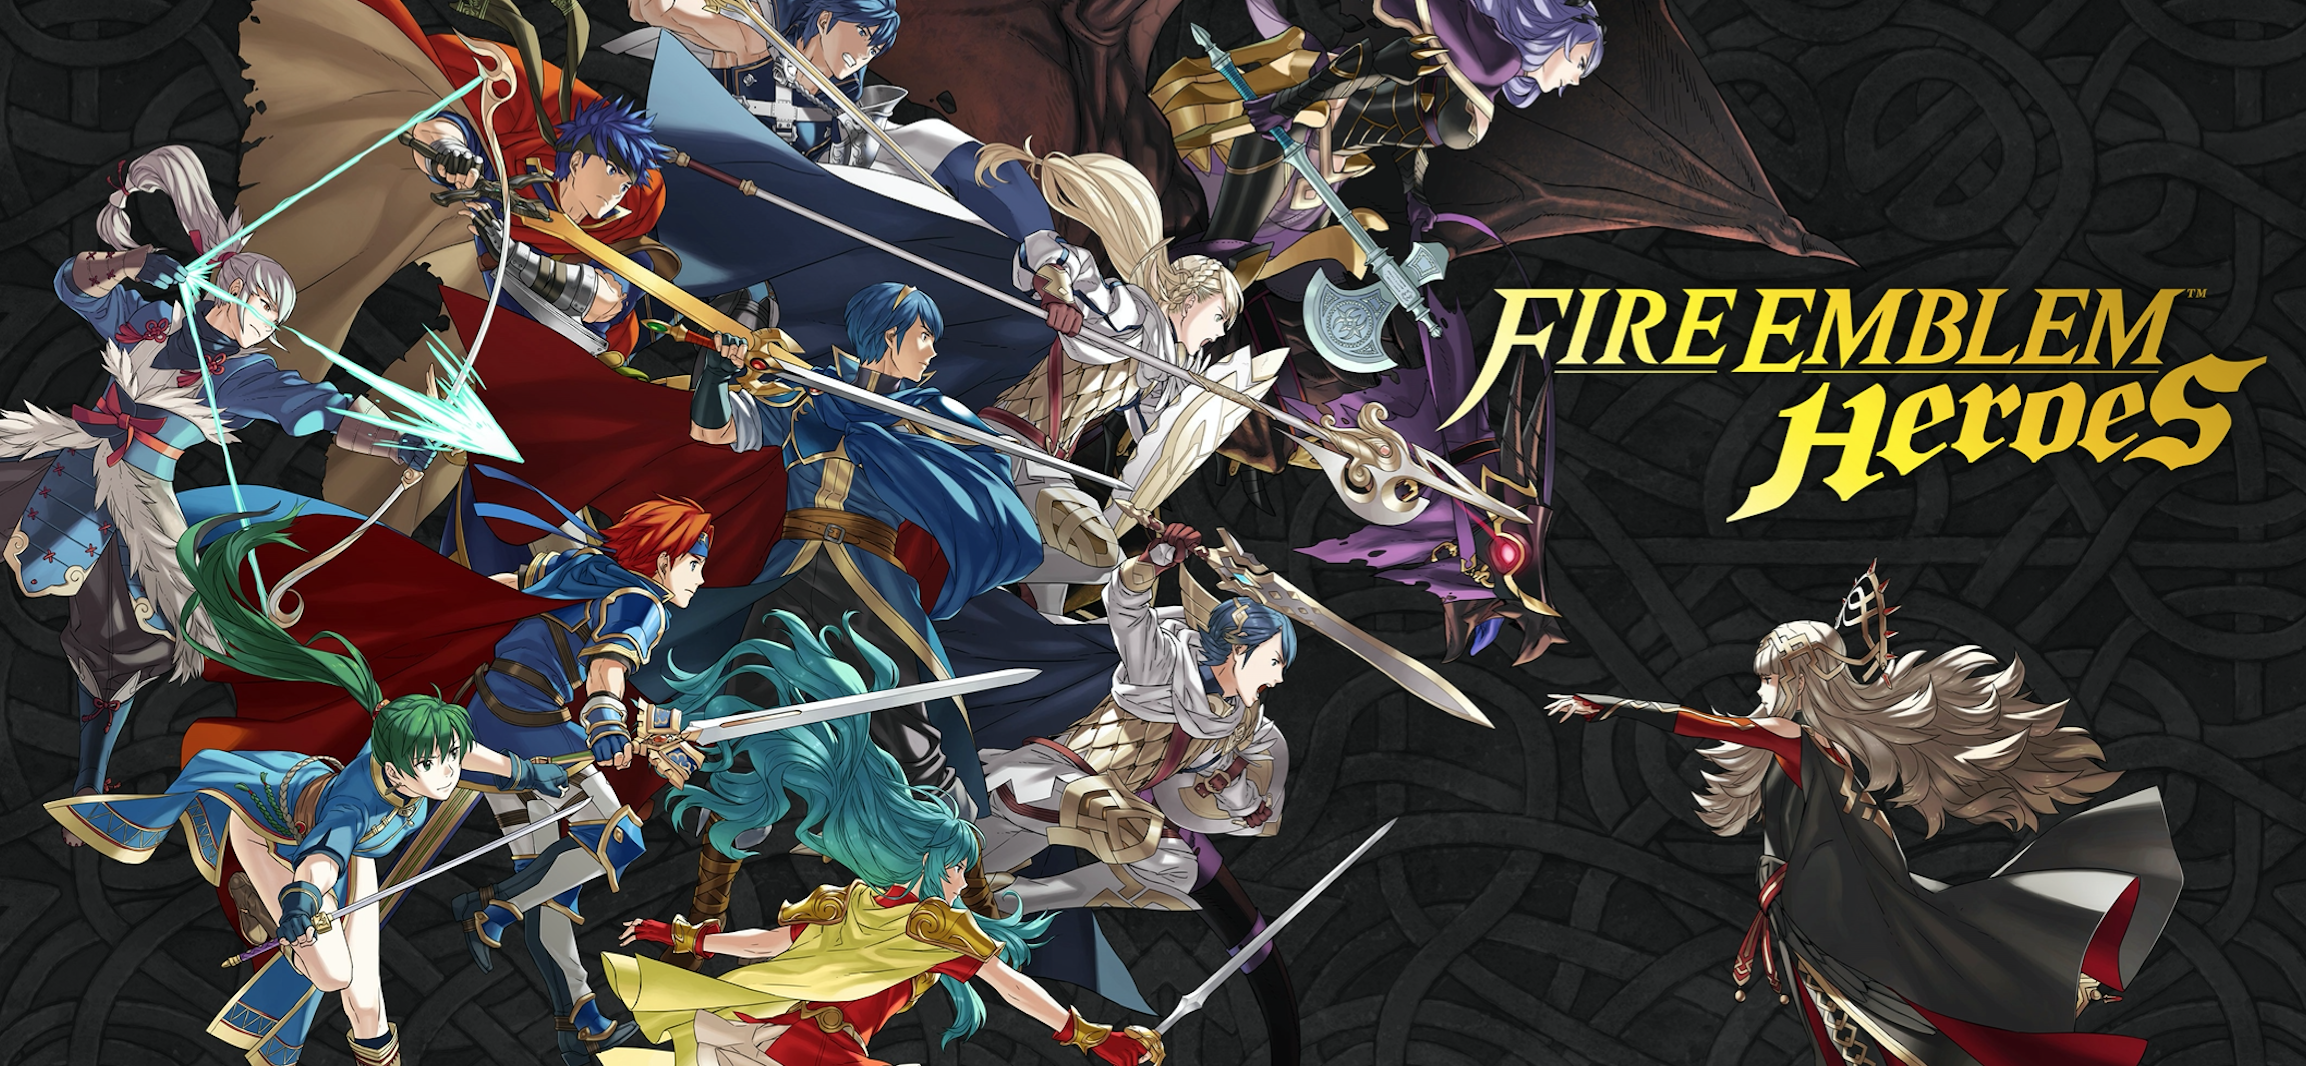 'Fire Emblem Heroes' Arrives On iOS and Android